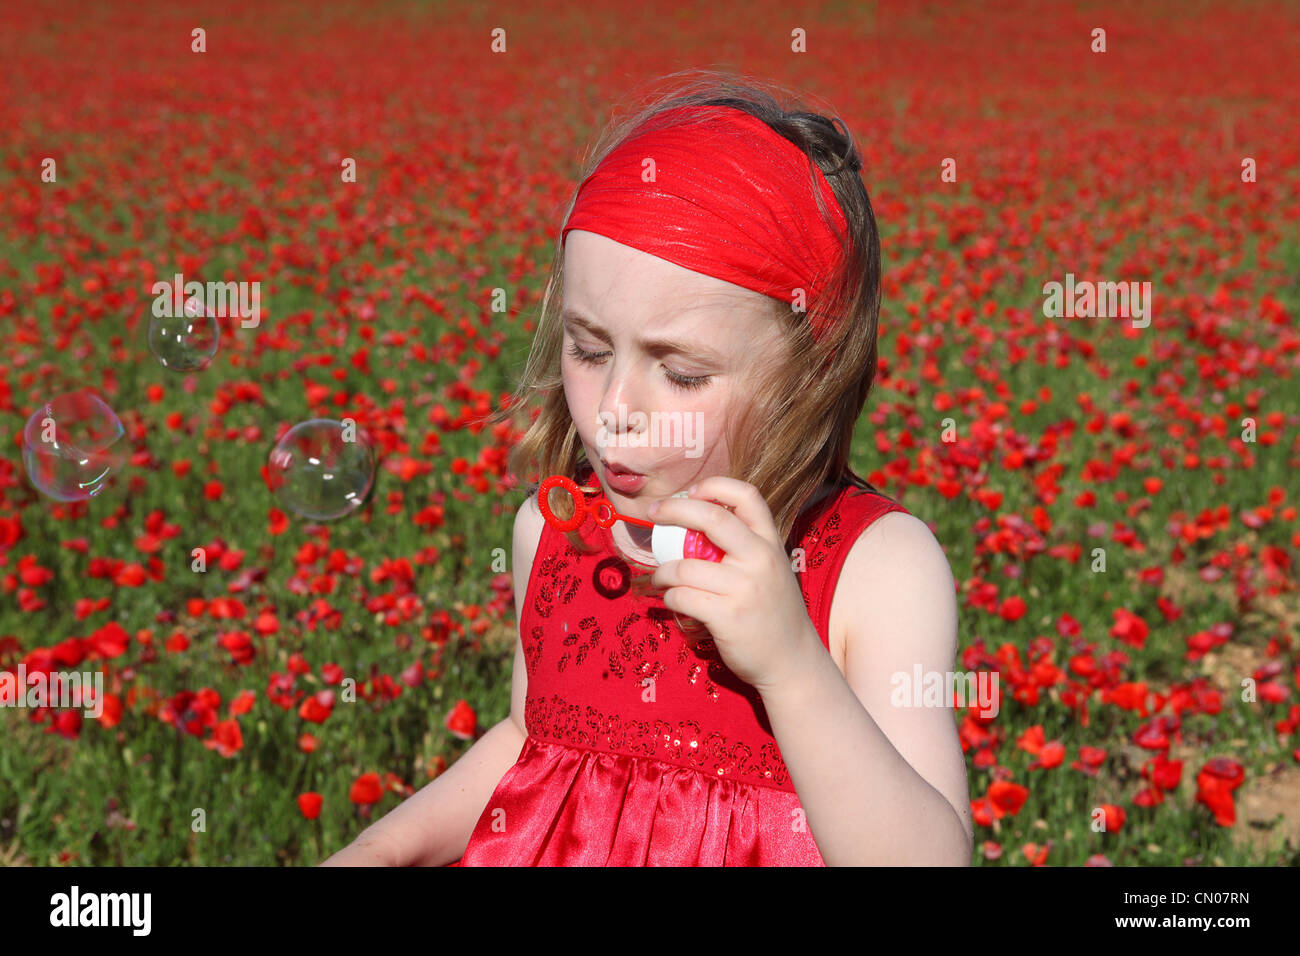 little girl blowing bubbles playing outdoors in summer Stock Photo